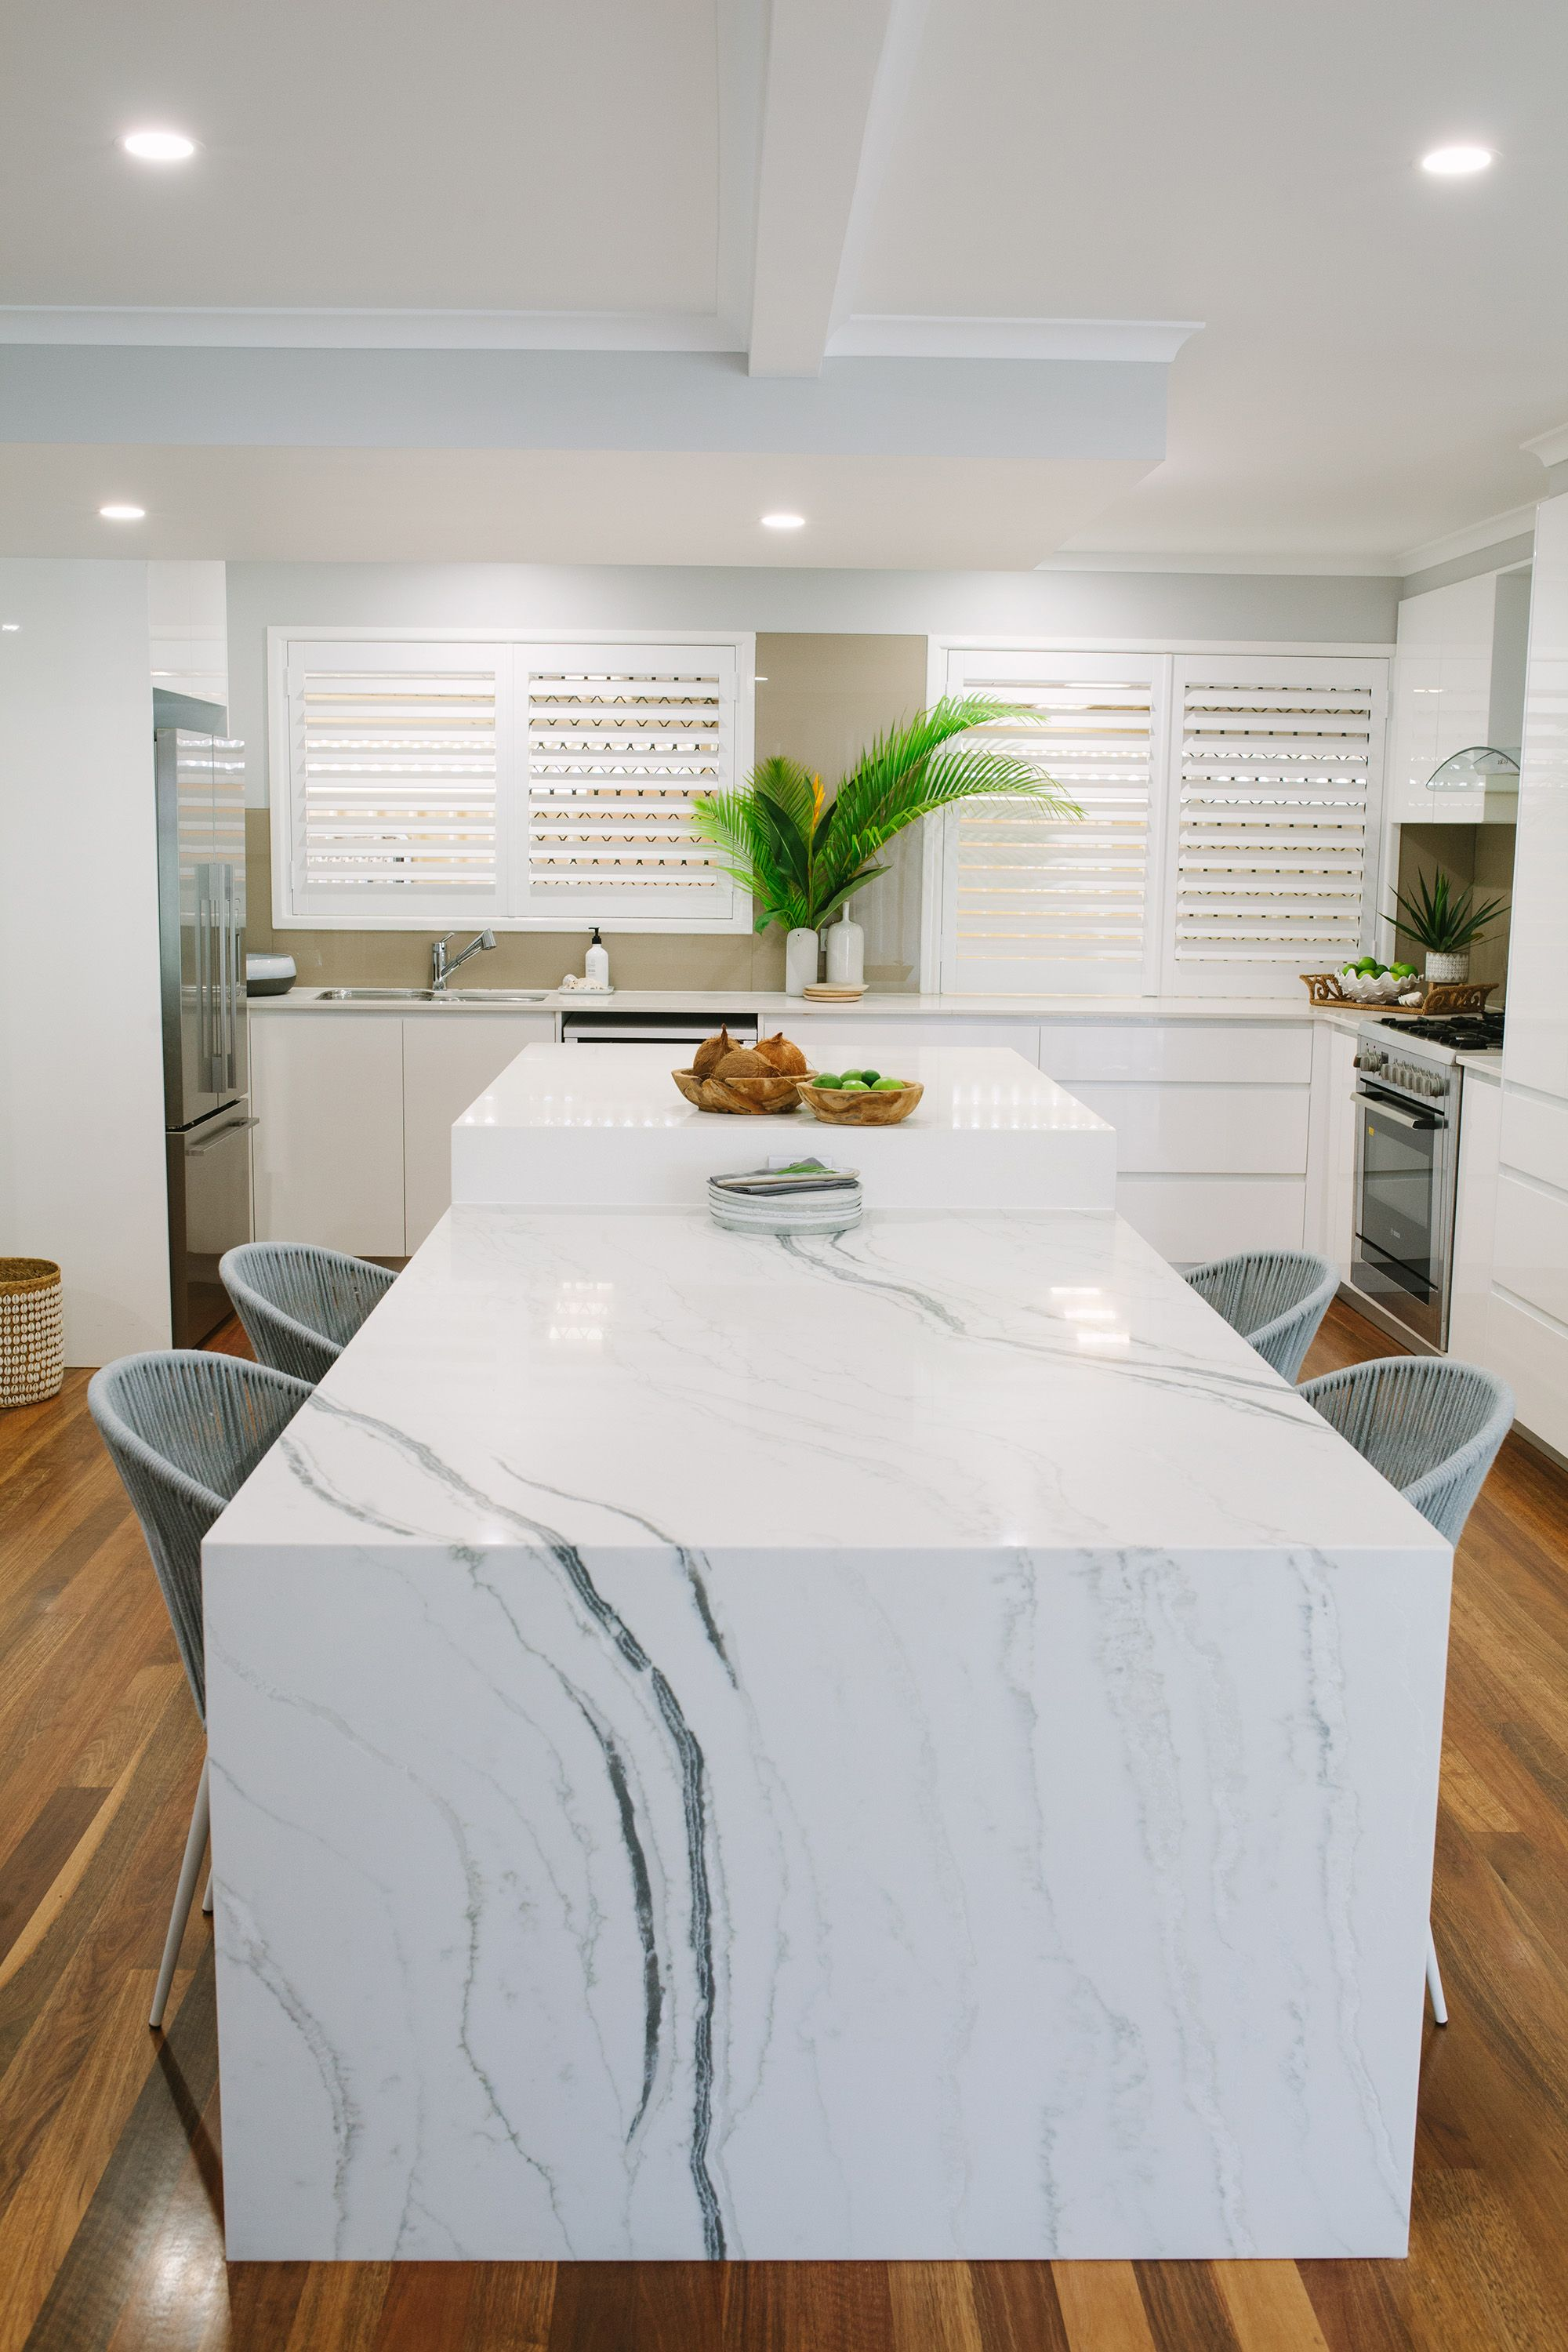 Arki Haus Smartstone Island Benchtop And Dining Table Top In Bianco Molasa Streamlined With A 50mm A White Modern Kitchen Kitchen Island Quartz Kitchen Redo